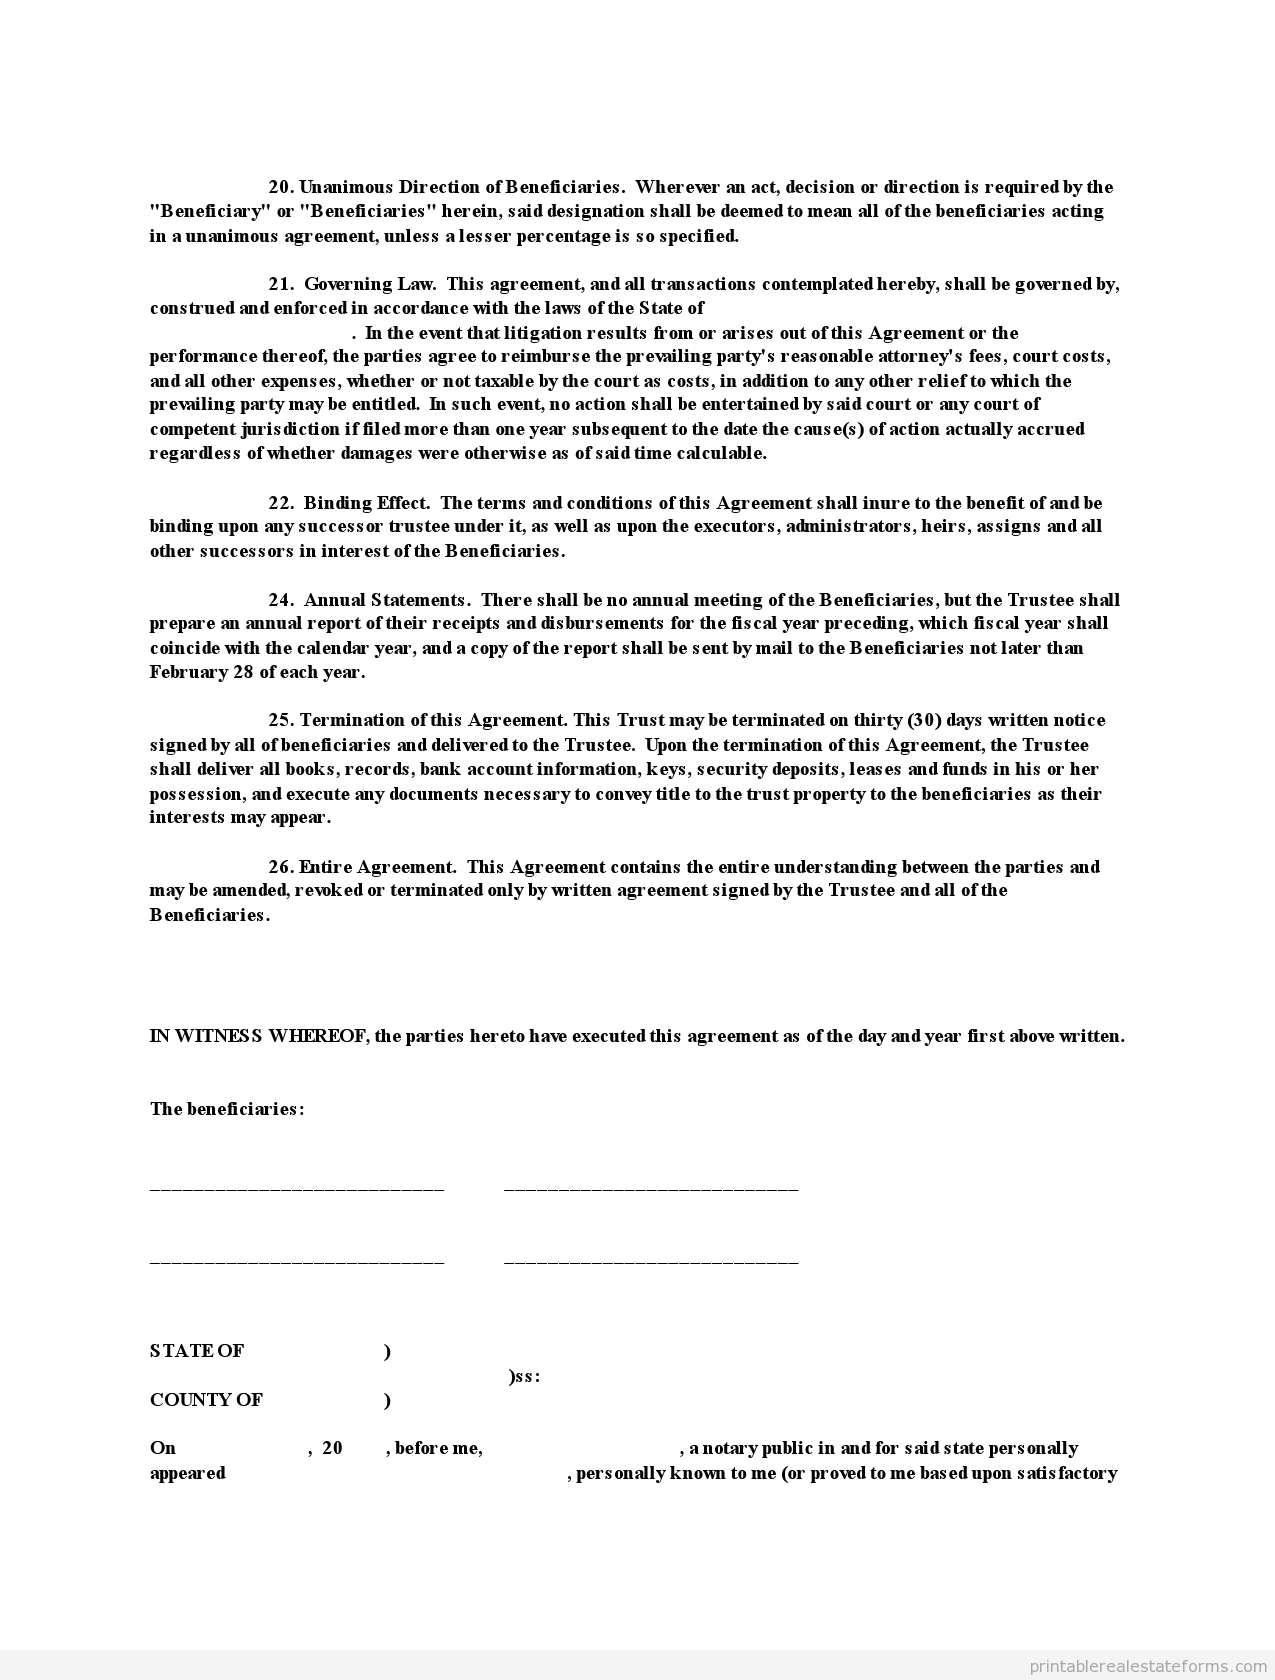 Sample Printable Pp Trust Form  Sample Real Estate Forms